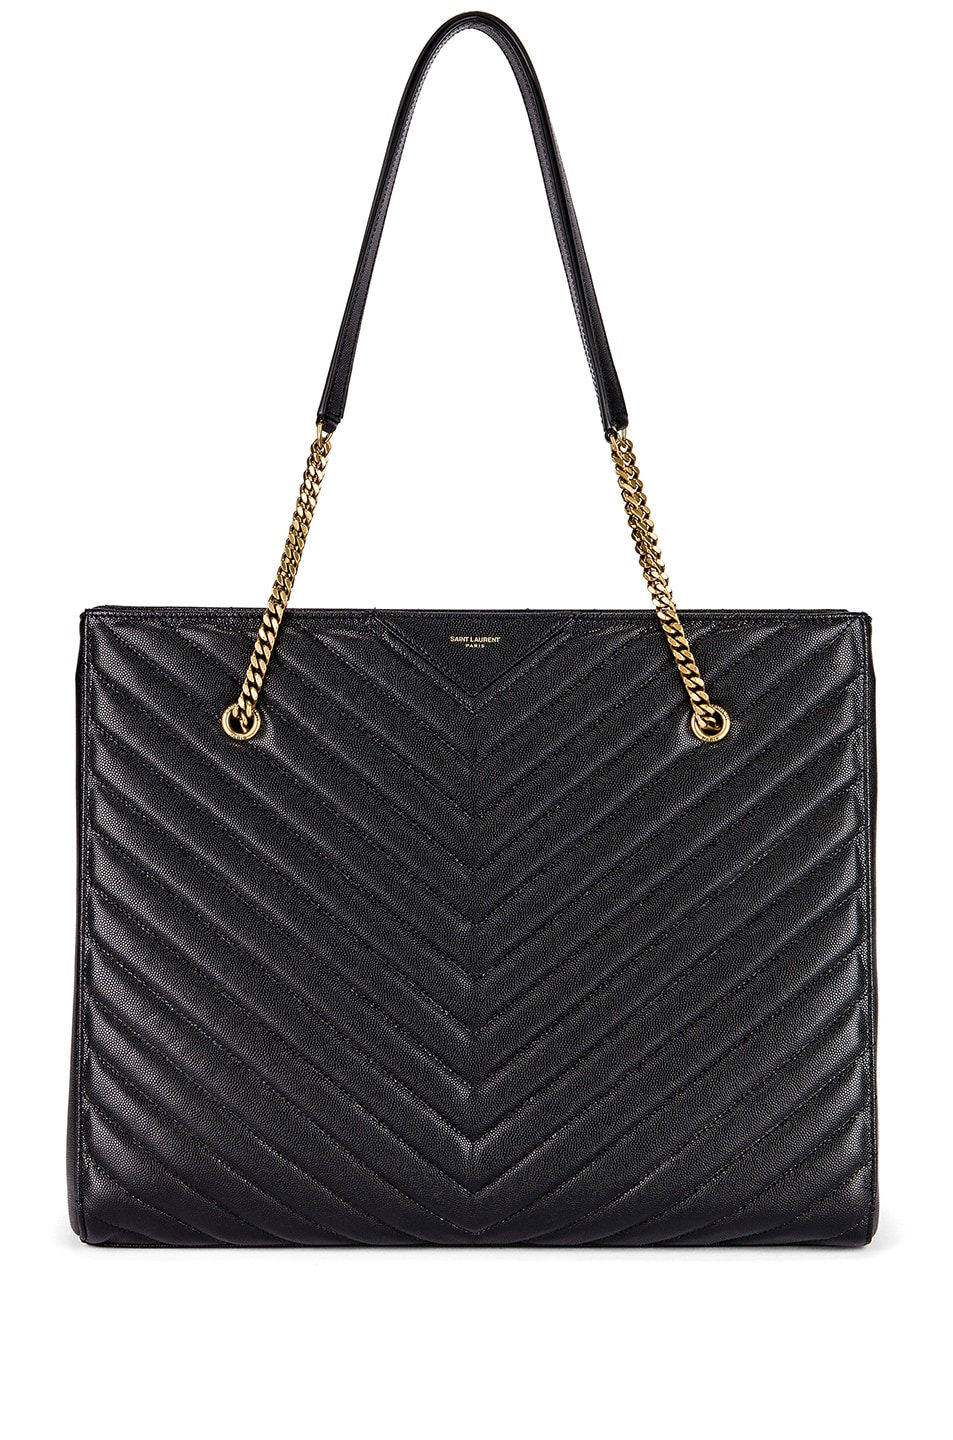 Image 1 of Saint Laurent Jumbo Tribeca Bag in Black